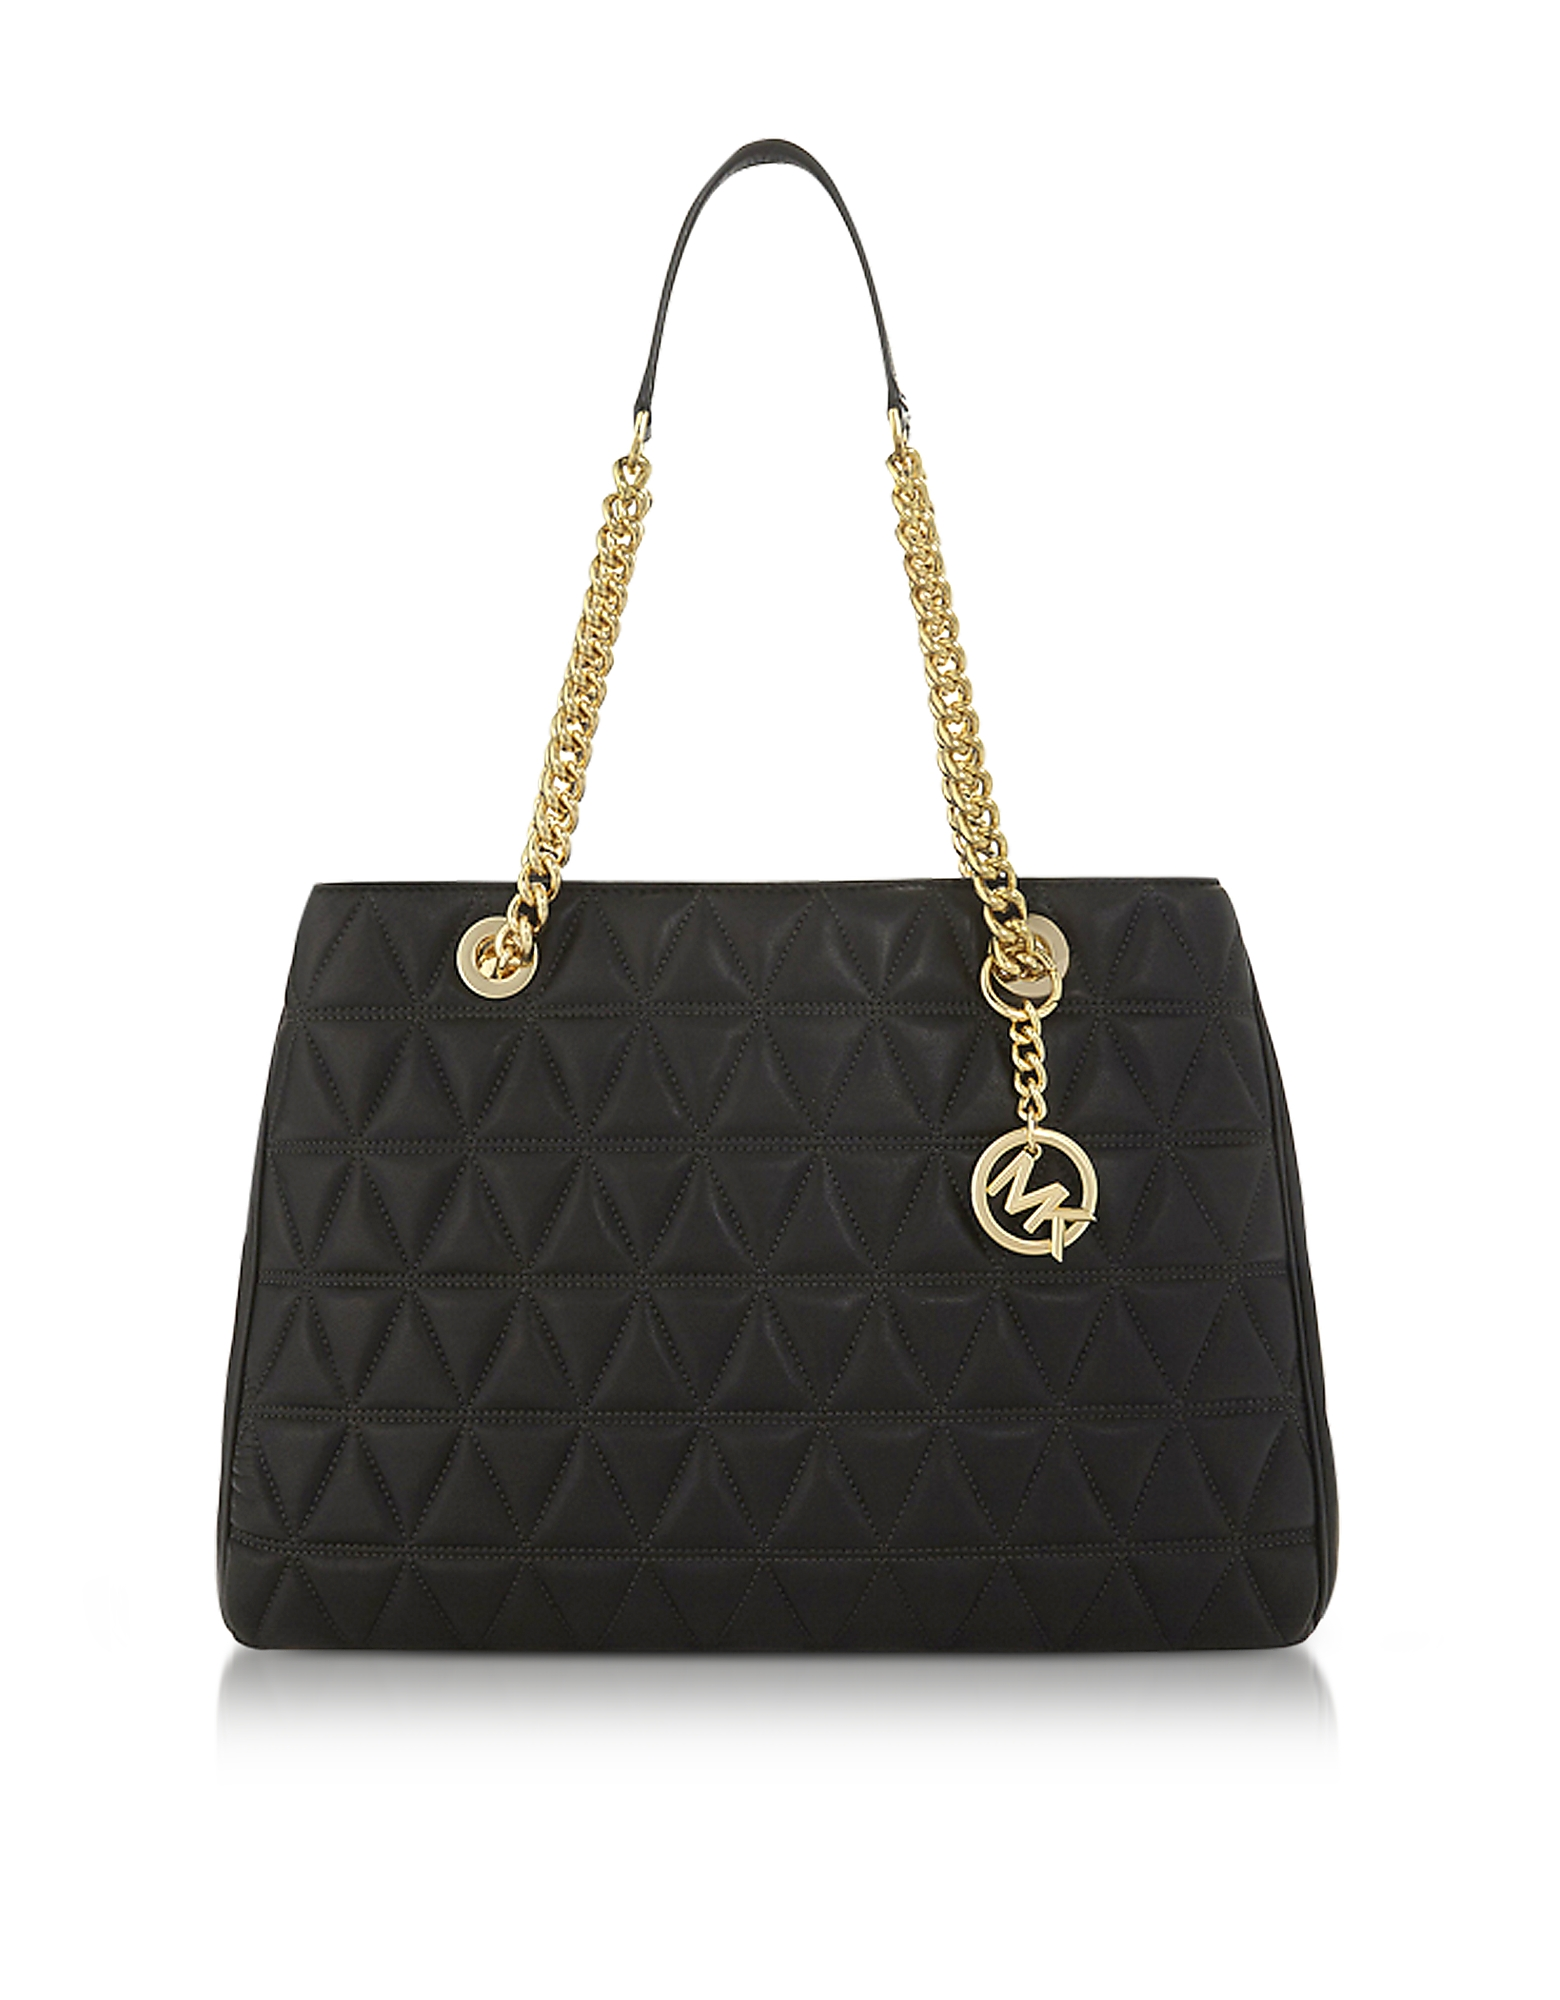 Michael Kors Handbags, Scarlett Large Black Quilted Leather Tote Bag